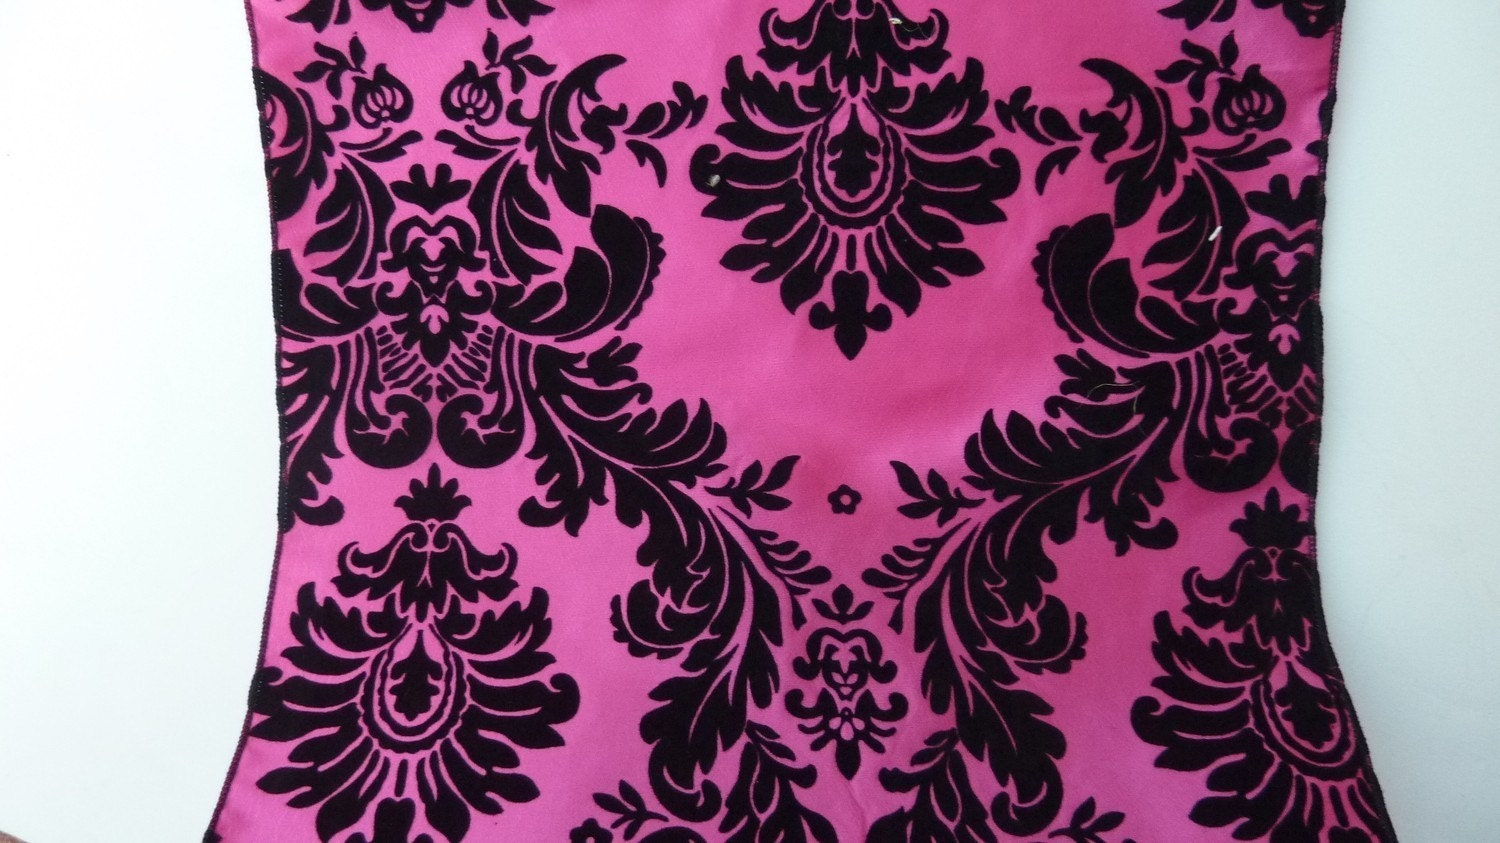 Simple Pink Damask Patterns   www.imgkid.com - The Image ...